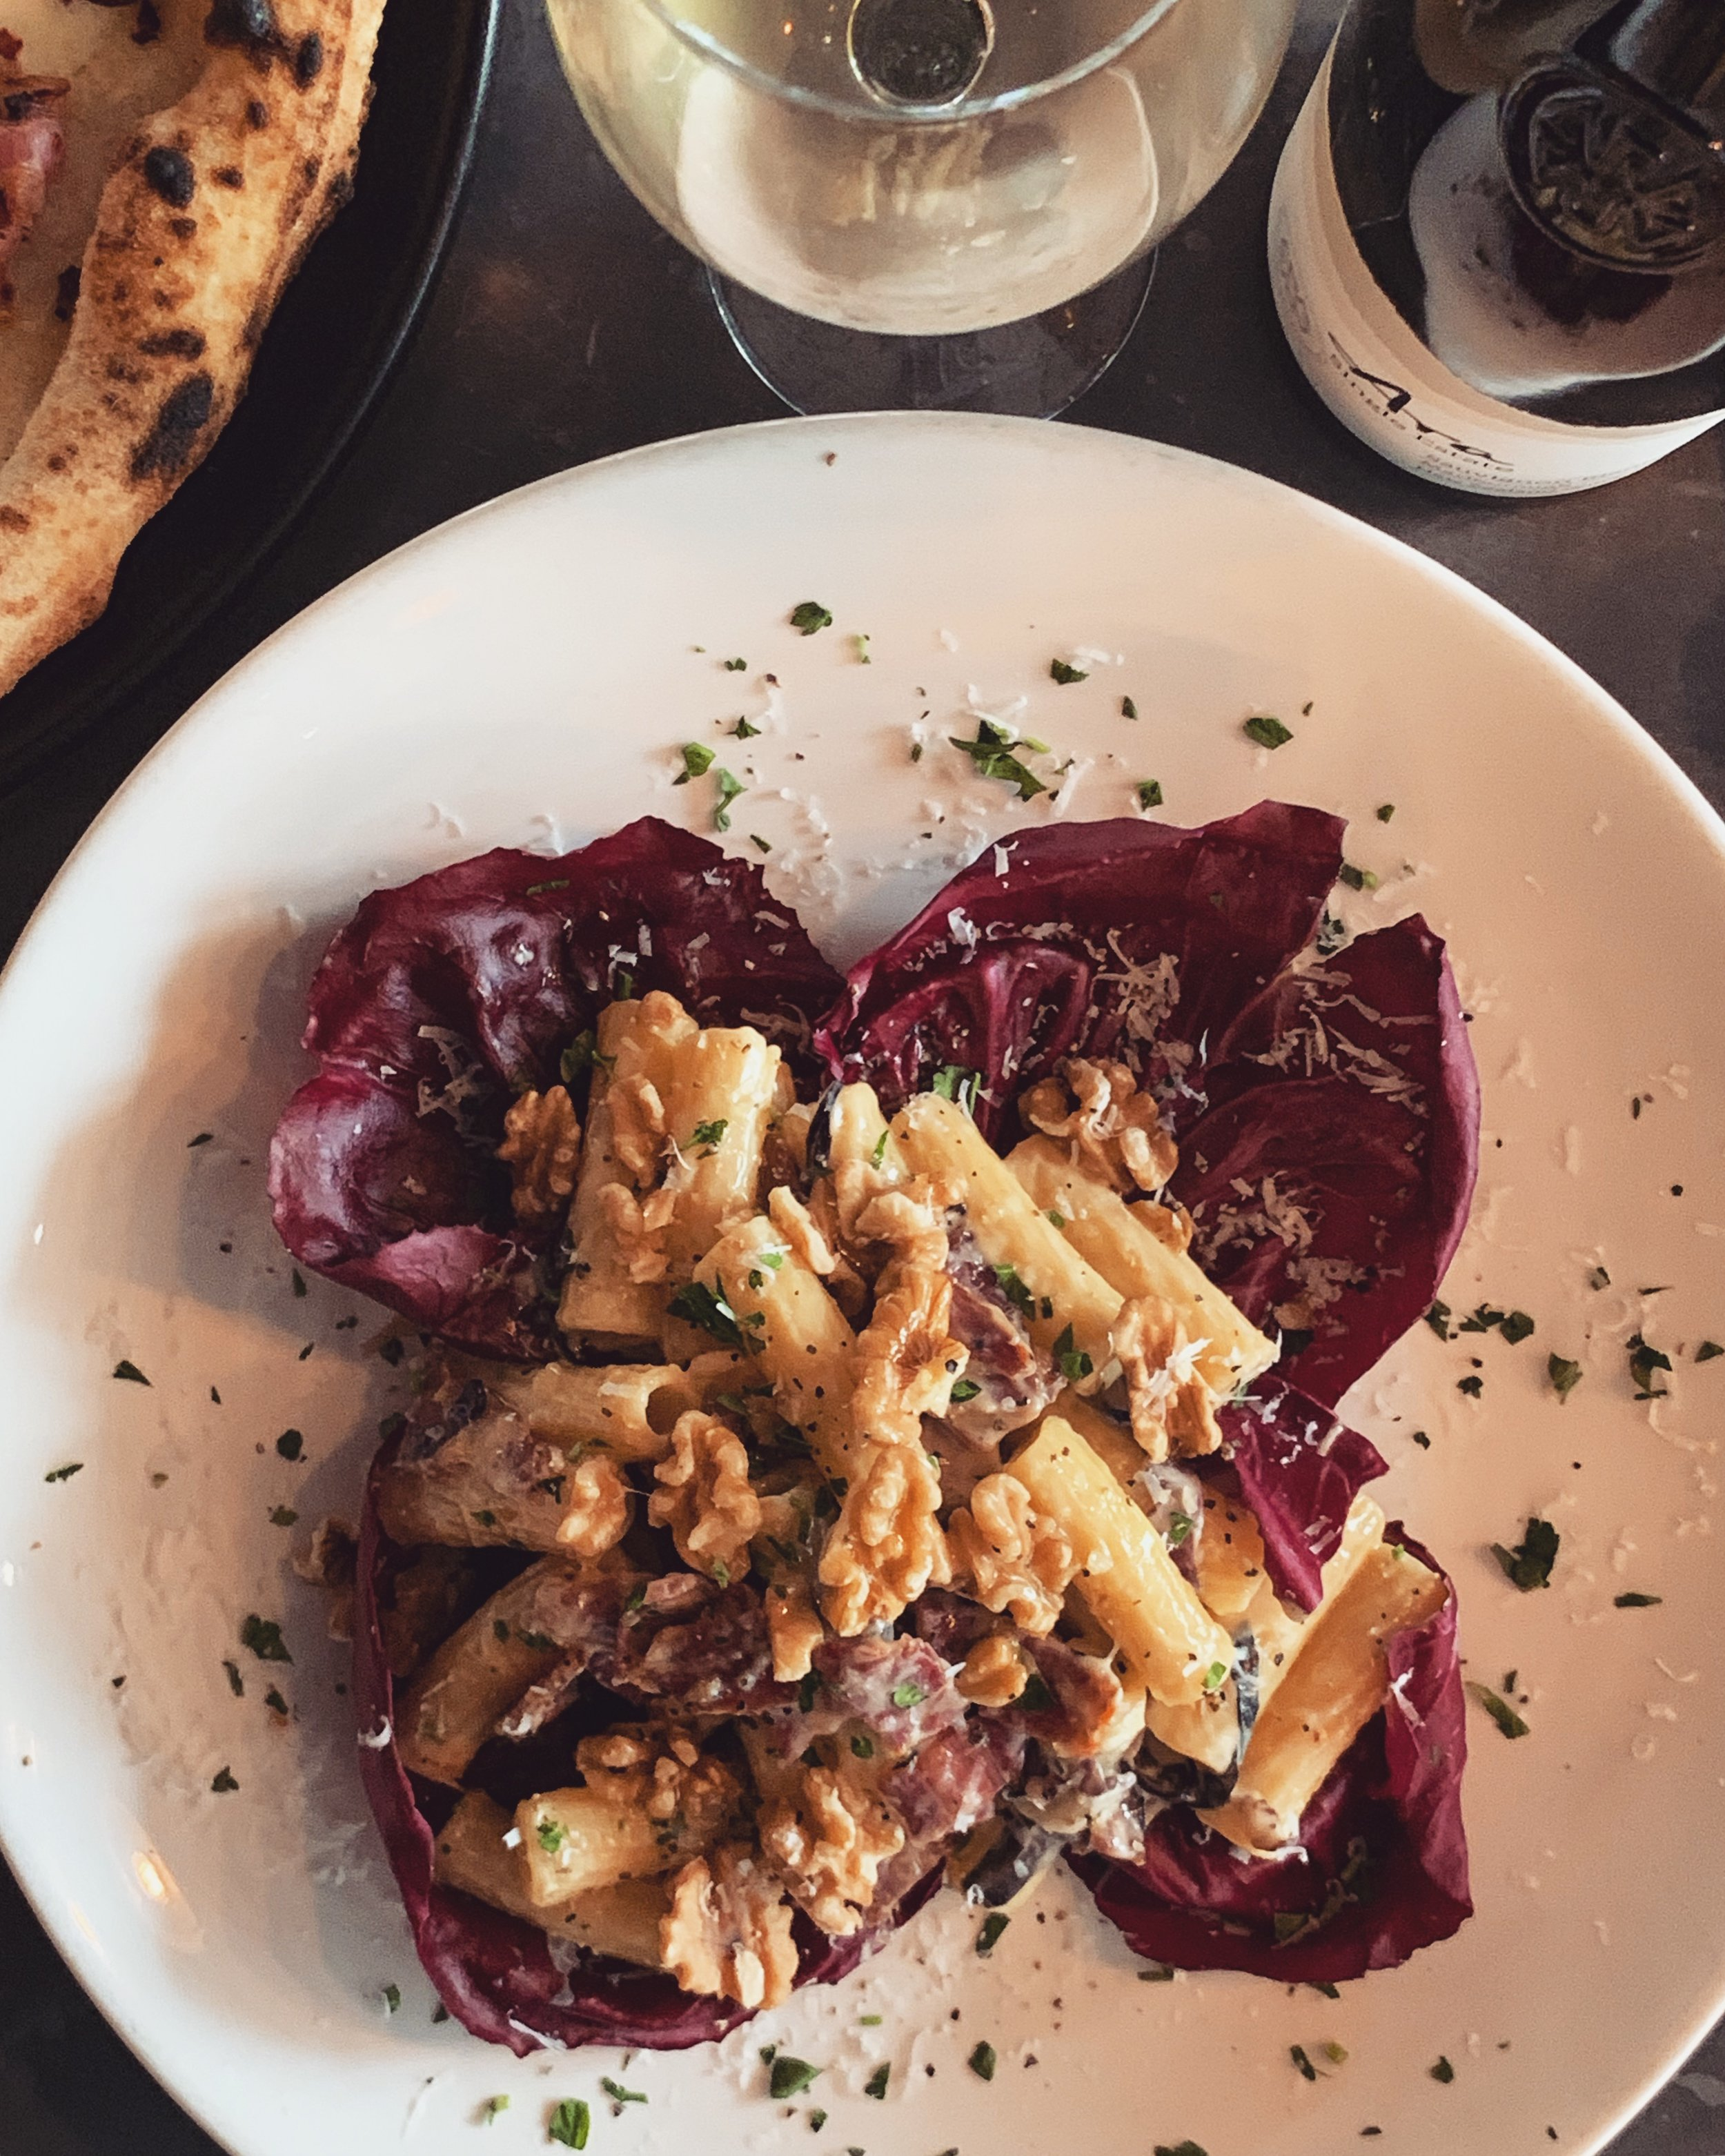 31 July-6 August - ~ R i g a t o n i a l l a M o n t a n a r a ~This week we are serving a dish that's for those who like bold flavours!// Rigatoni, gorgonzola piccante, mountain speck, radicchio, walnuts and parmigiano reggiano. //.Perfect comfort food for these recent cooler nights. 👌🏻